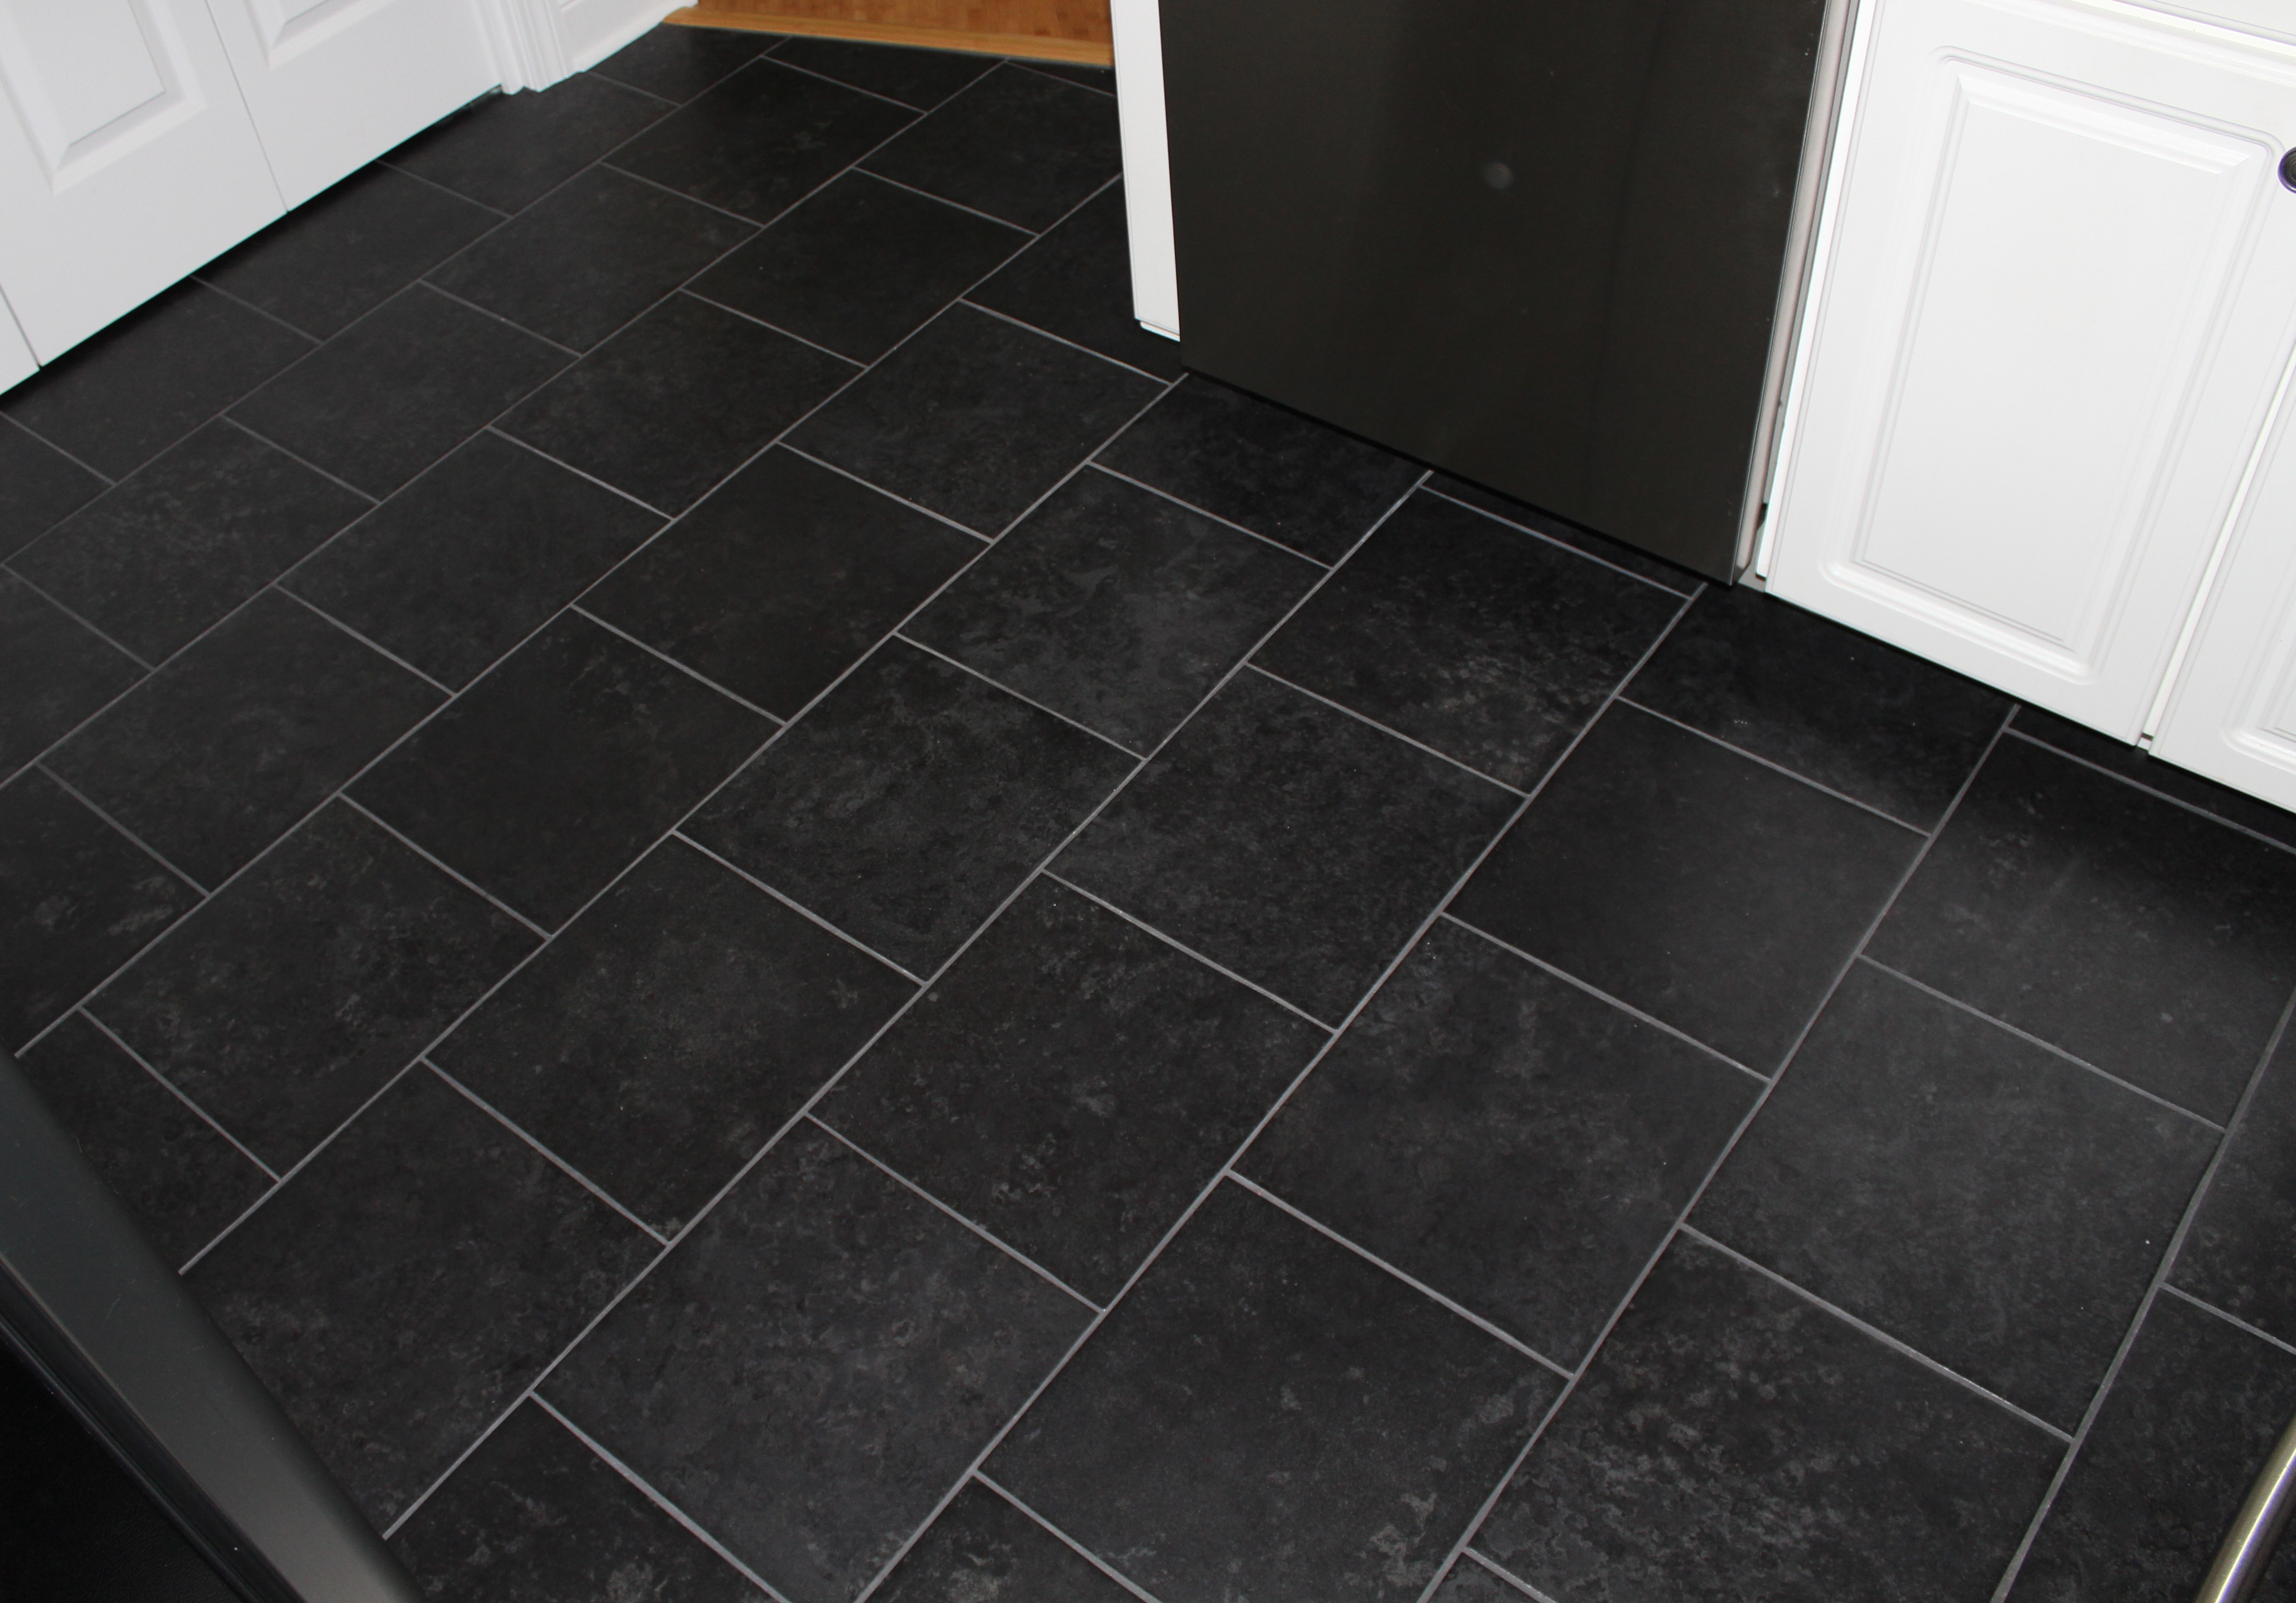 Porcelain Tiles For Kitchen Floors Black Tile Kitchen Floorjpg